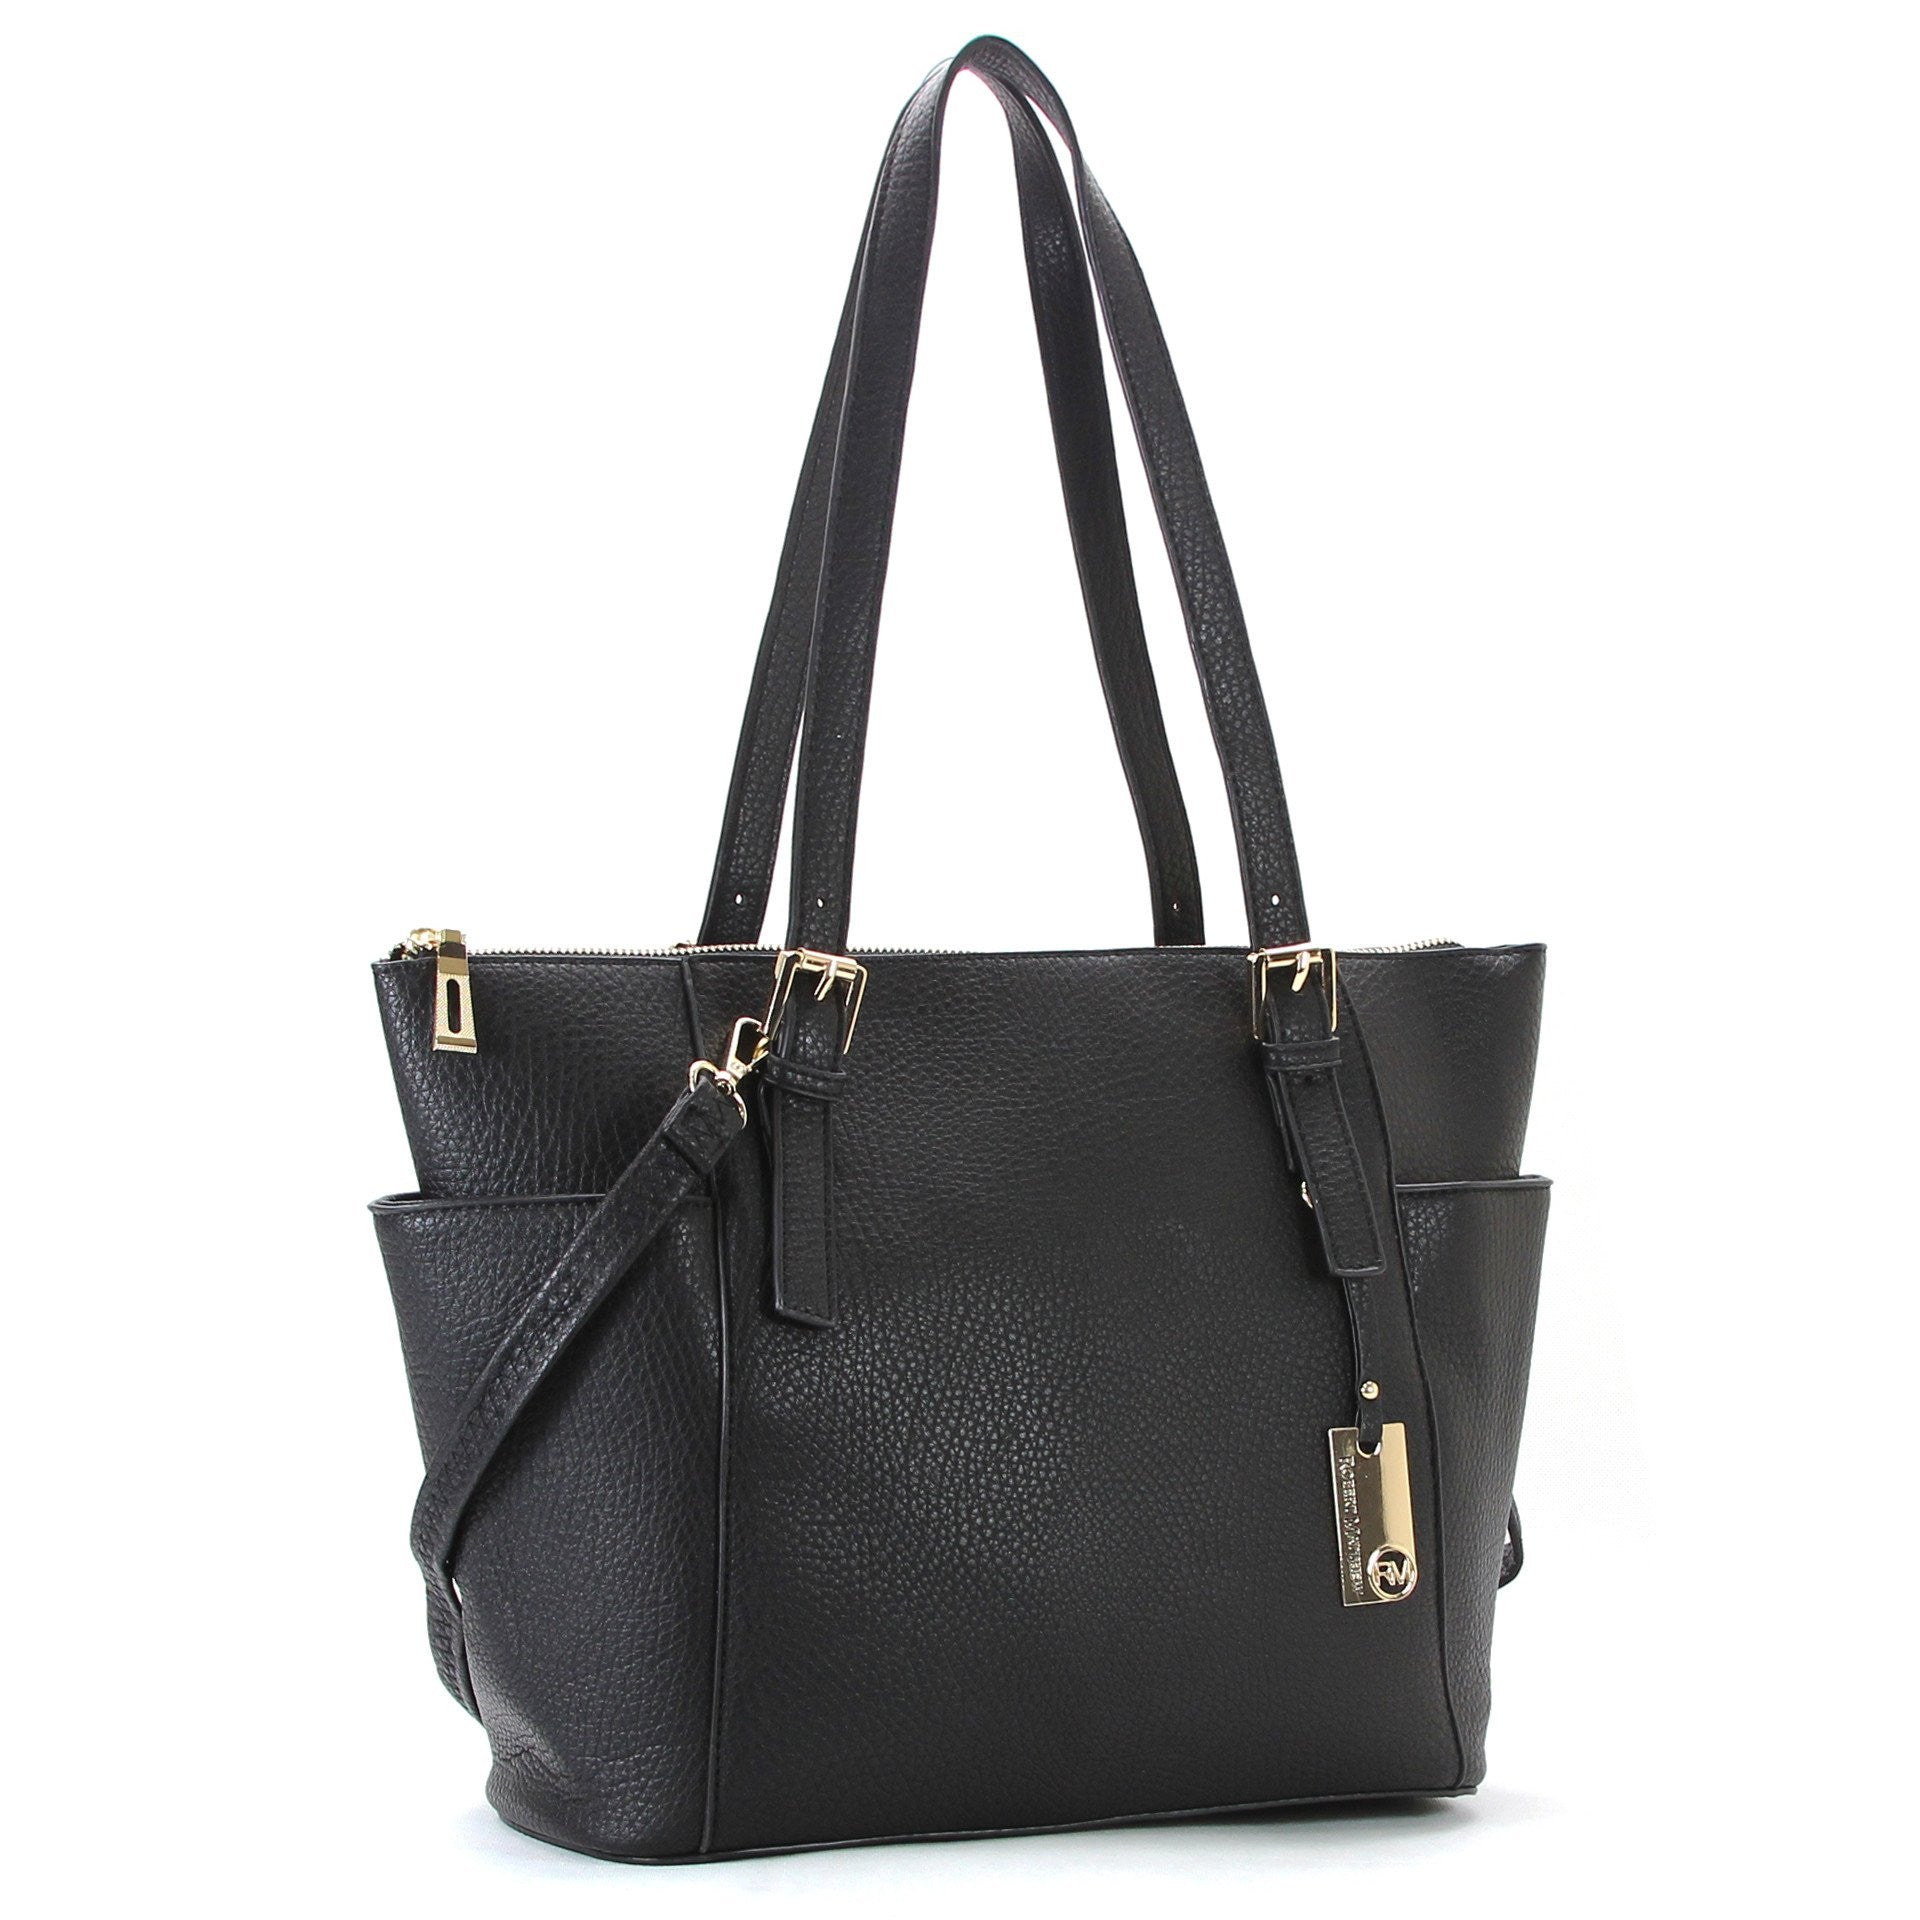 Handbag, Tote, Shoulder Bag - Robert Matthew Khloe Tote - Black